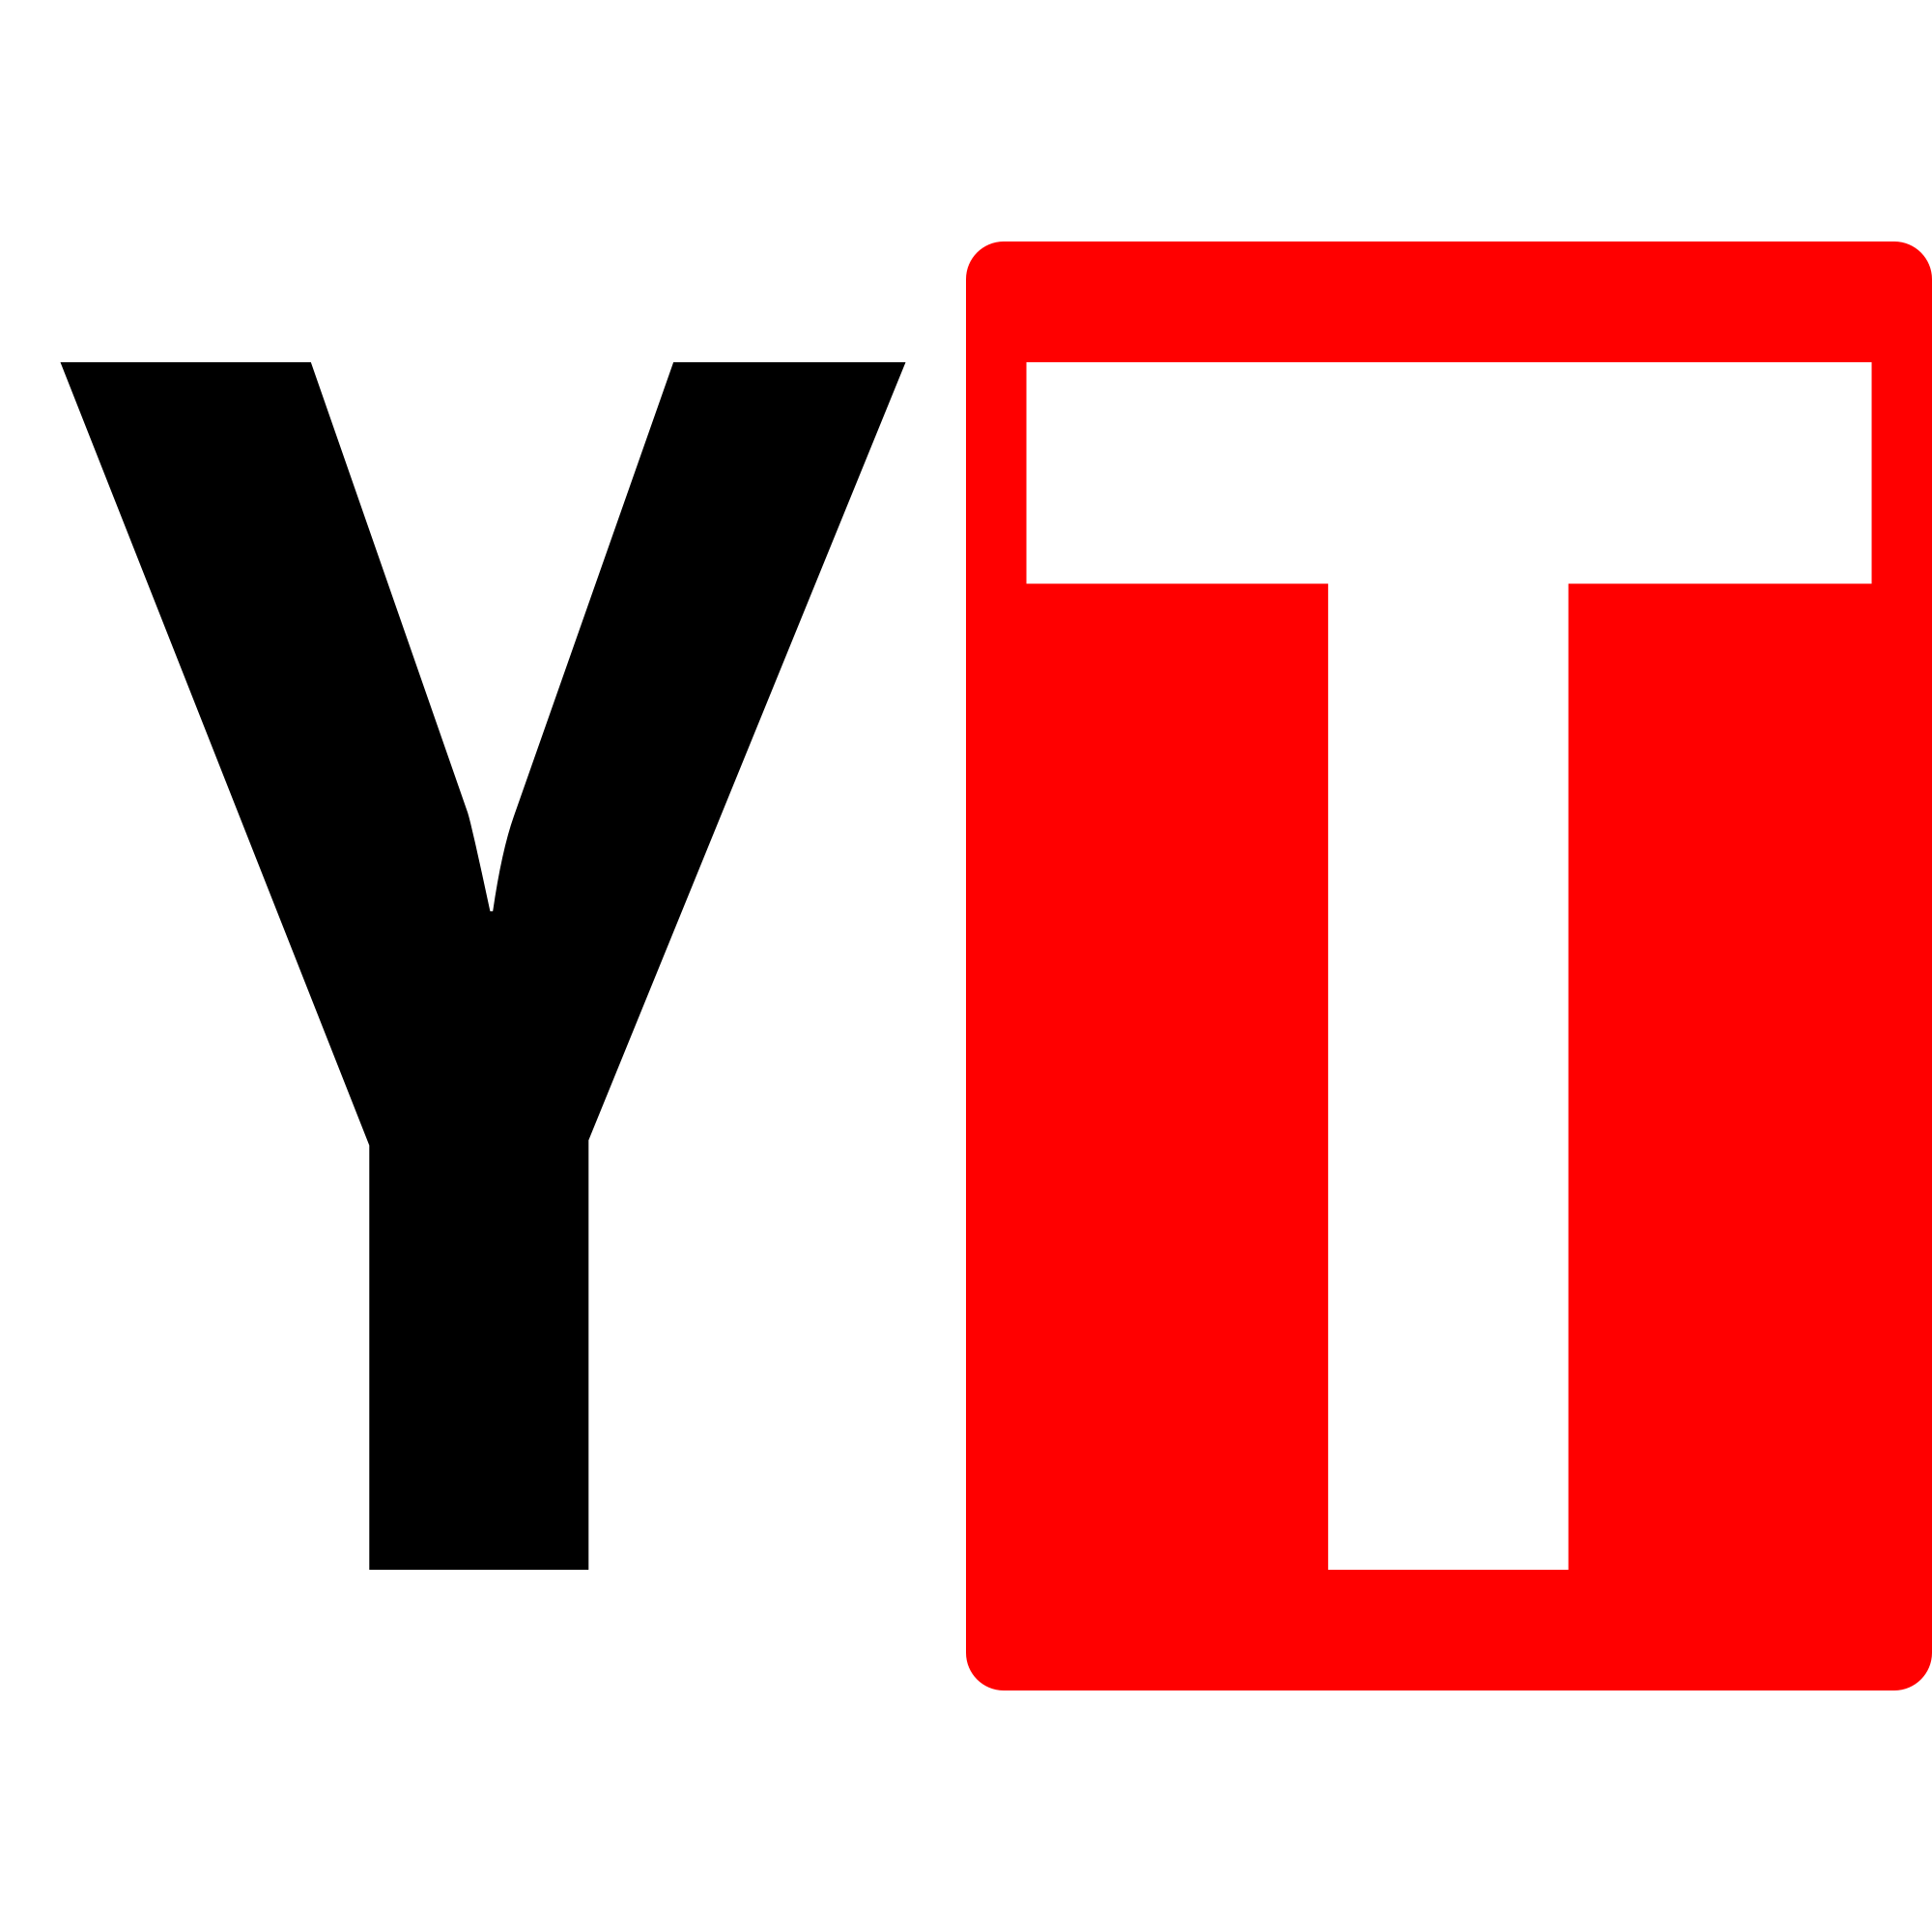 2000x2000 Logo For Youtube Size